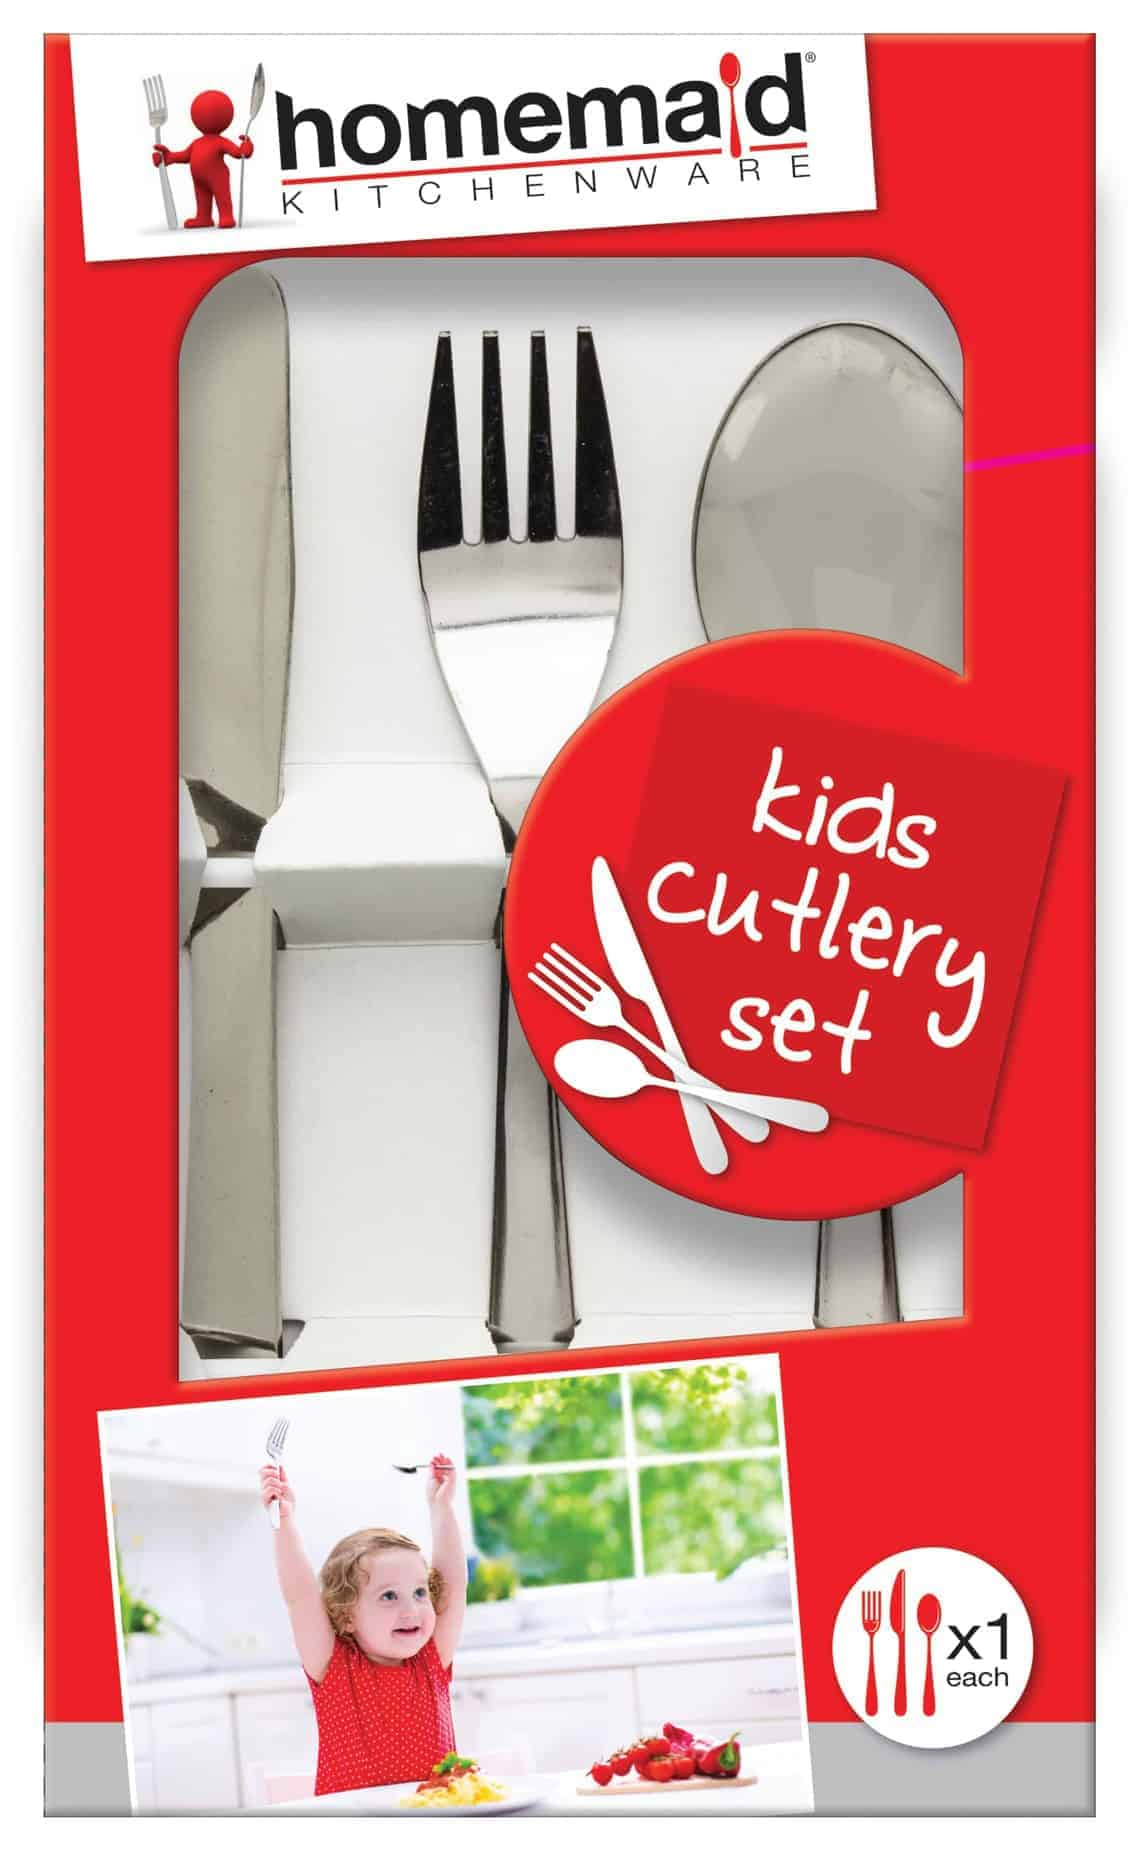 Home Maid 3pc Kids Cutlery Set